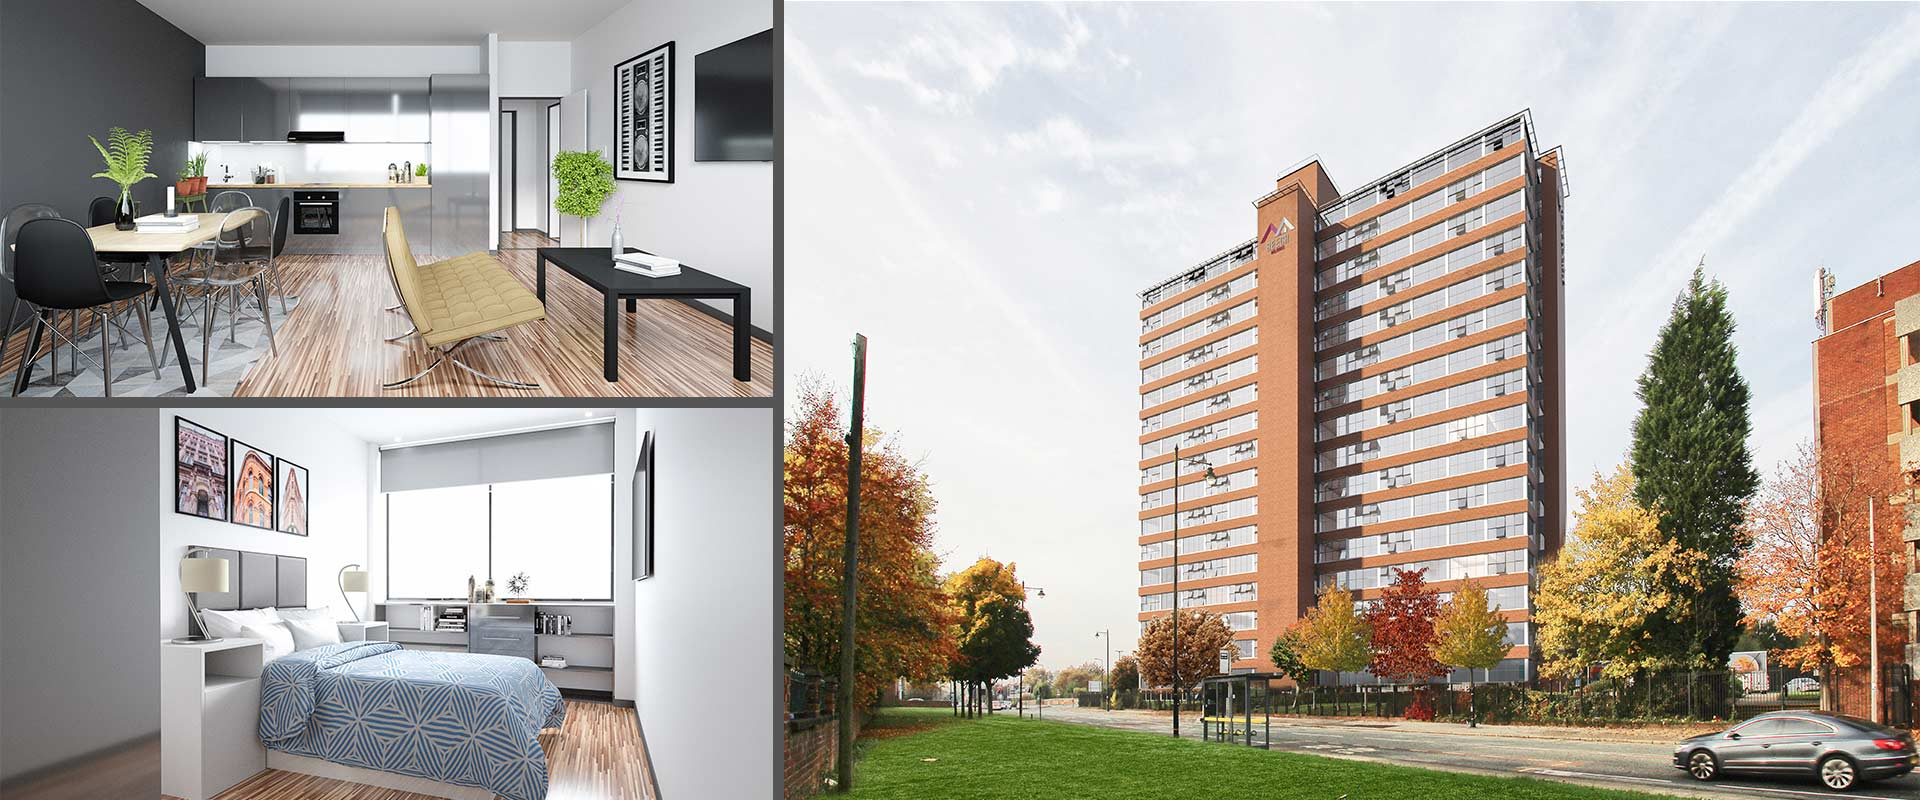 WEST POINTManchester, England - Location: Manchester, England (Old Trafford)Guide price from: £79,000 to £170,857Type: Apartments, Studio, 1 and 2 BedBuy to Let Investment (Very Desirable)We are now down to the final 14 units in West Point, Manchester. Our developer has embarked in the acquisition of unloved, forgotten buildings in prime locations, with our attention turned to Manchester city centre WestPoint is an excellent, affordable, environmentally sustainable and effciently designed selection of apartments for the increasing number of young professionals living in the thriving city centre.The development is on target to be completed by the end of July 2018...